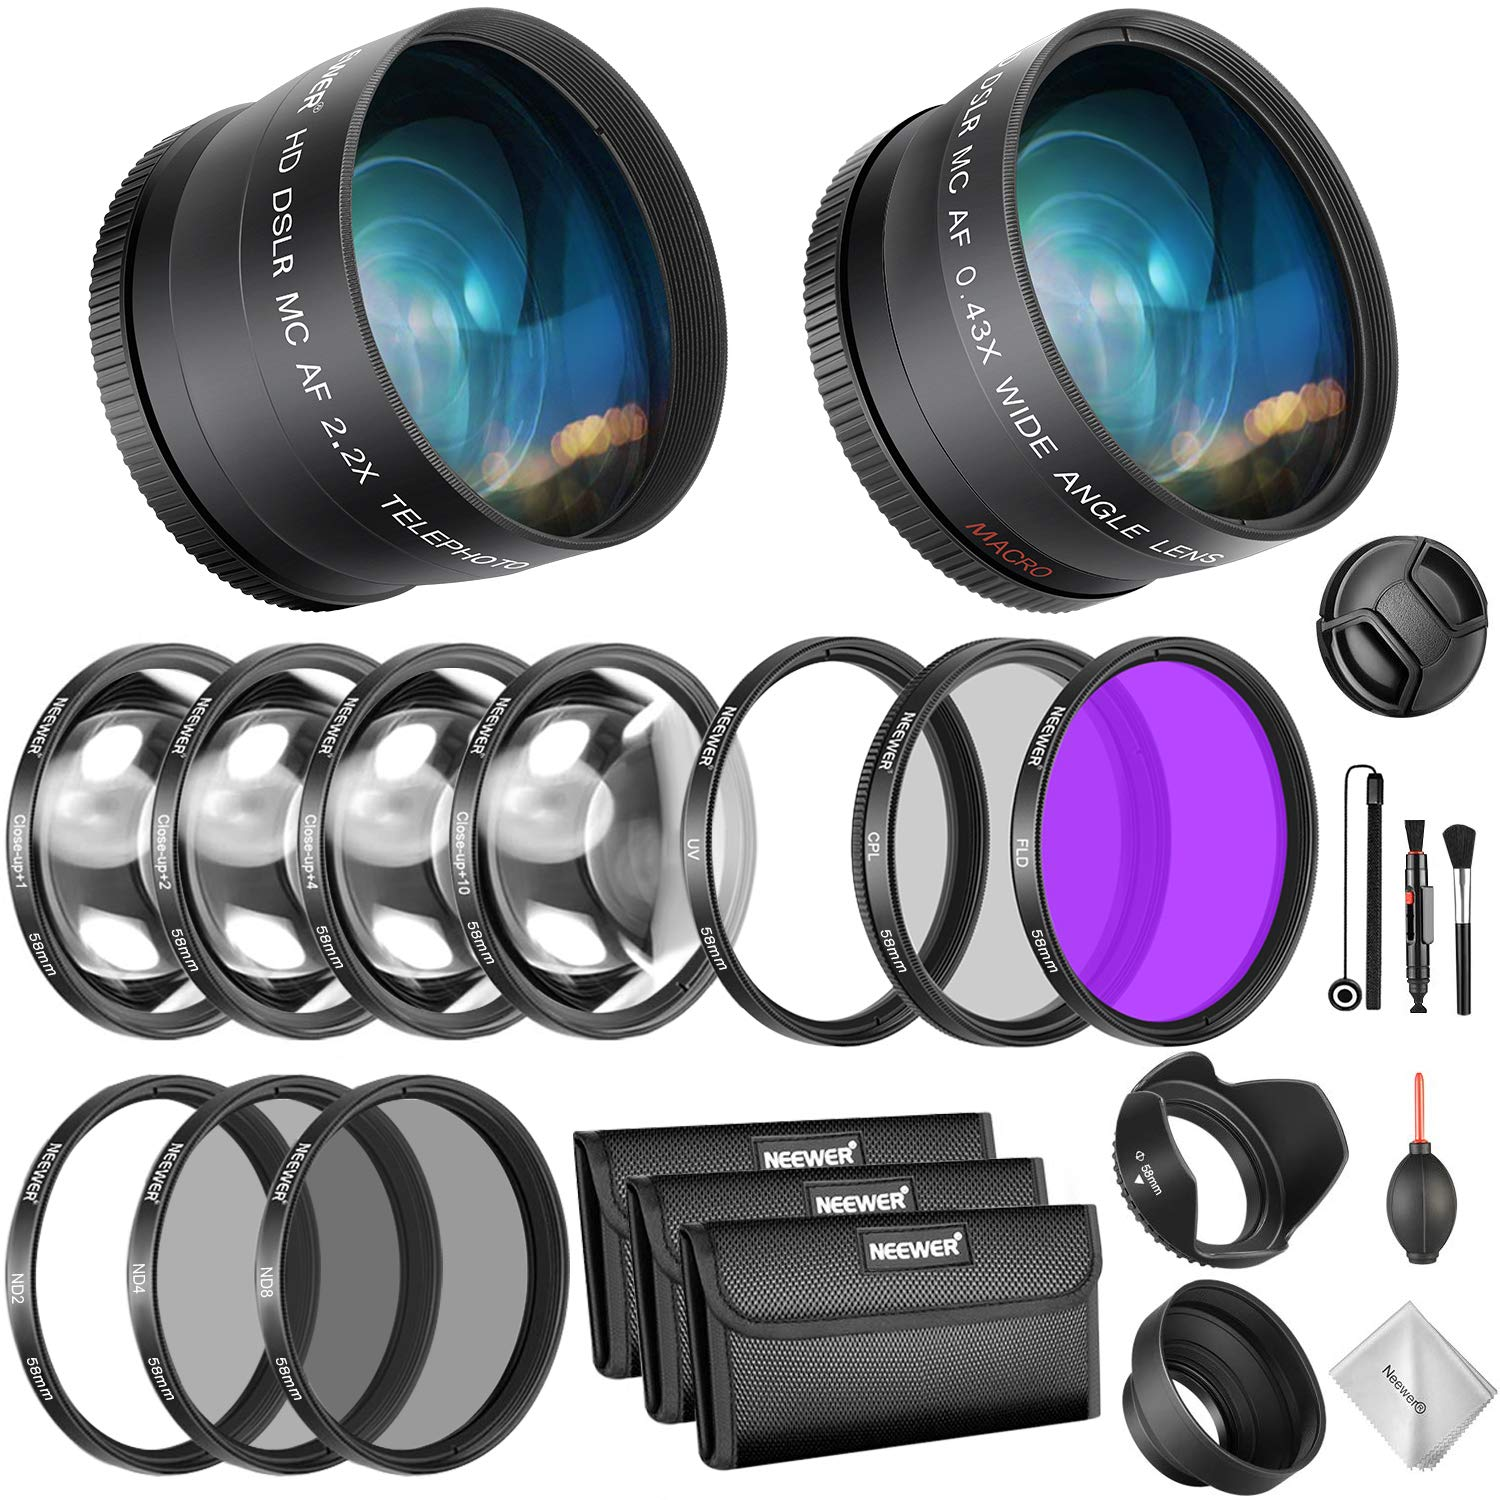 Neewer 58mm Lens and Filter Bundle: Wide Angle Lens, Telephoto Lens and Filter Set (Macro, ND, UV, CPL, FLD) for Canon EOS Rebel T7i SL2 T6i T6s T6 T5i T5 T3i 80D 77D 70D 60D Cameras with 58mm Lenses by Neewer